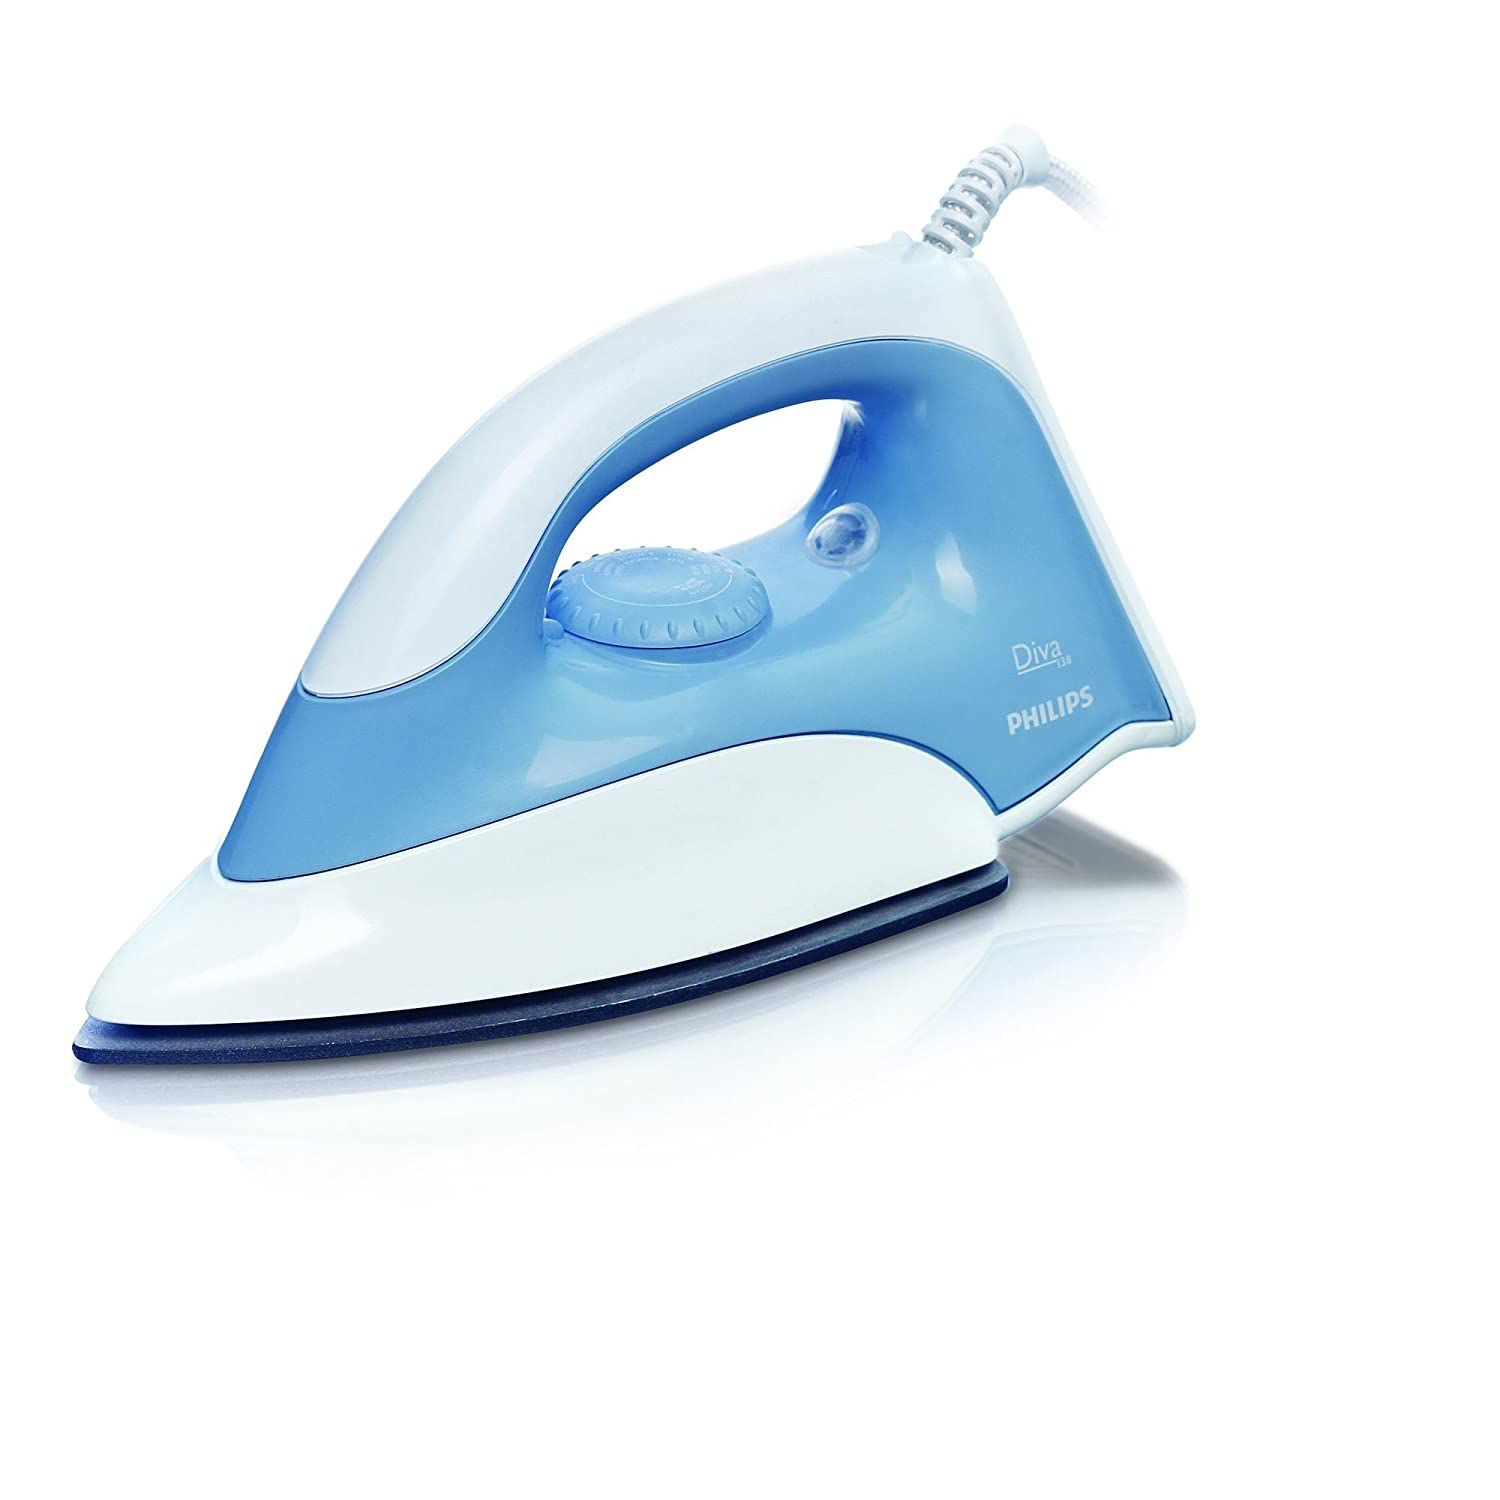 Amazon.com: Philips GC138 1100-watt Plancha en Seco (Azul y ...